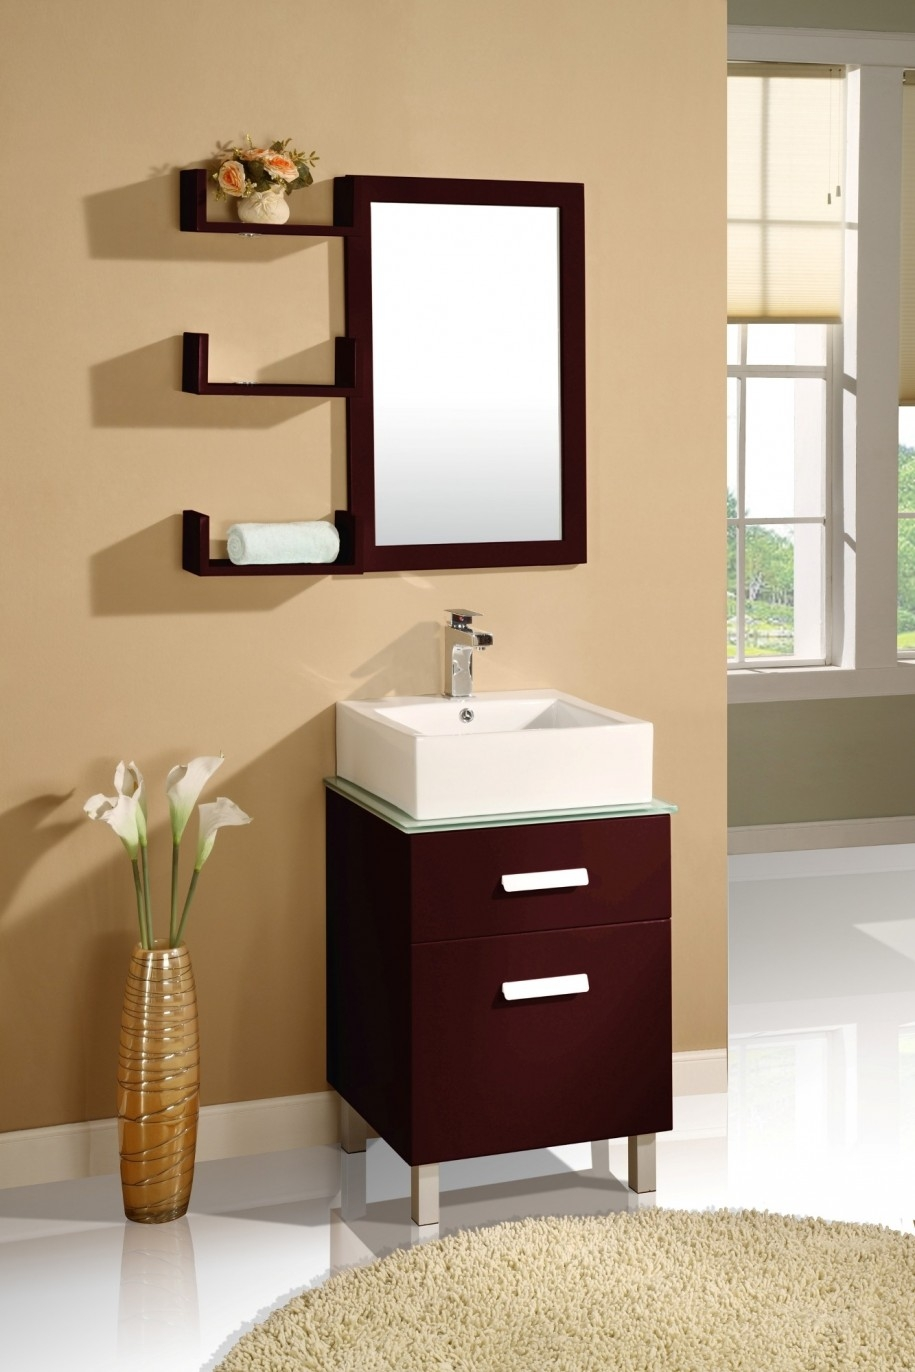 Bathroom Vanity Mirror With Shelfsimple dark wood bathroom mirrors with shelves and small dark wood